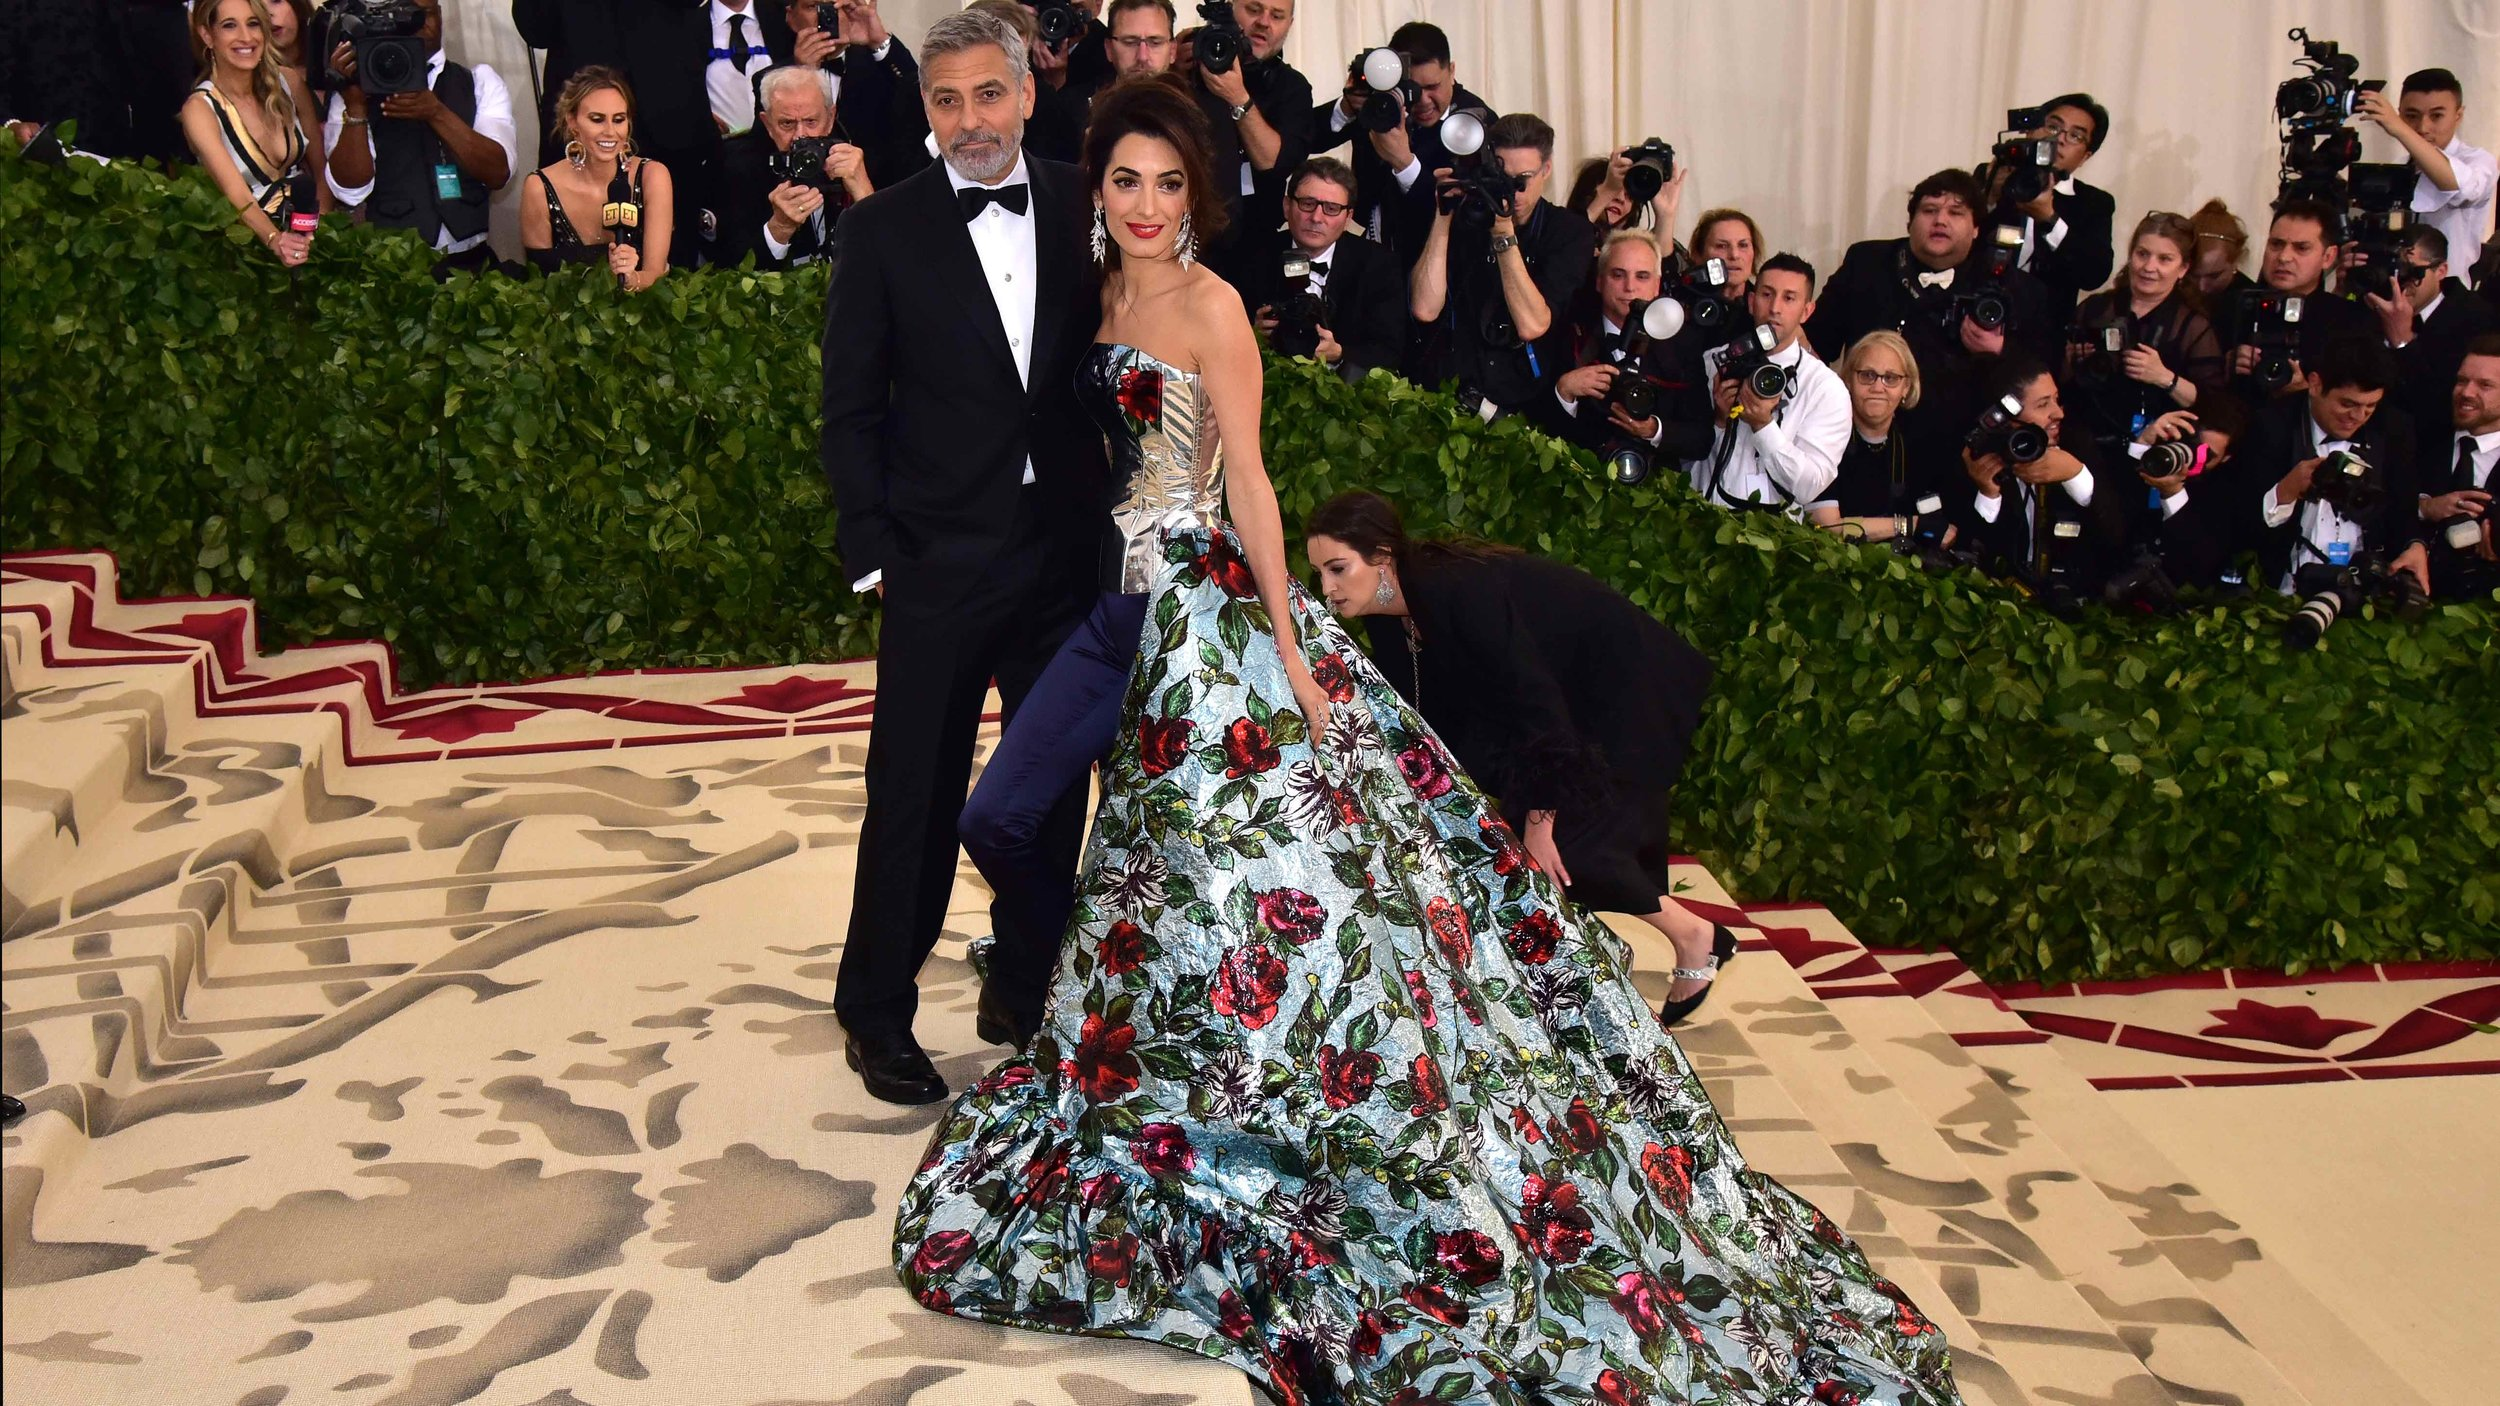 Amal and George Clooney -  MET Gala 2018 . Showcasing the double standards of men and women's Red Carpet fashion. Image: Getty Images.